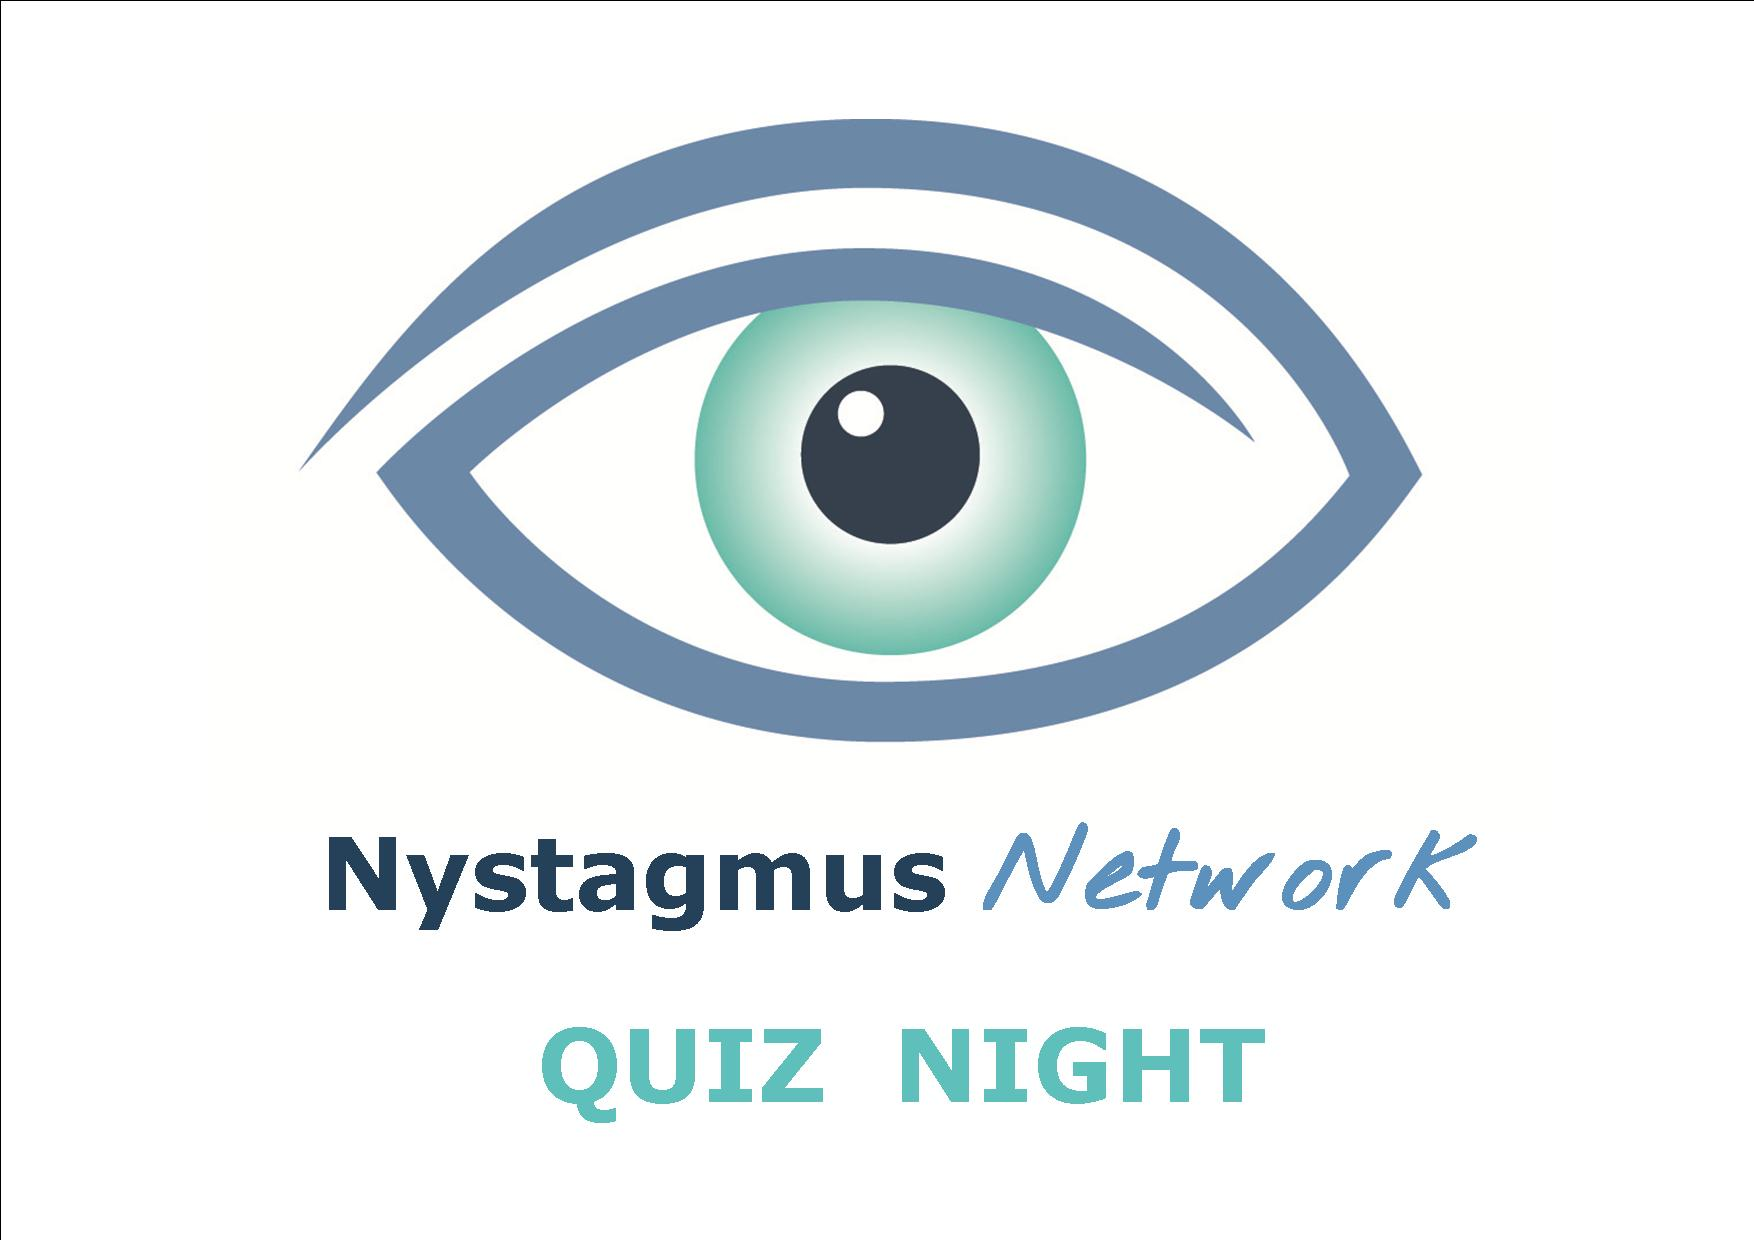 Nystagmus Network quiz night postcard.